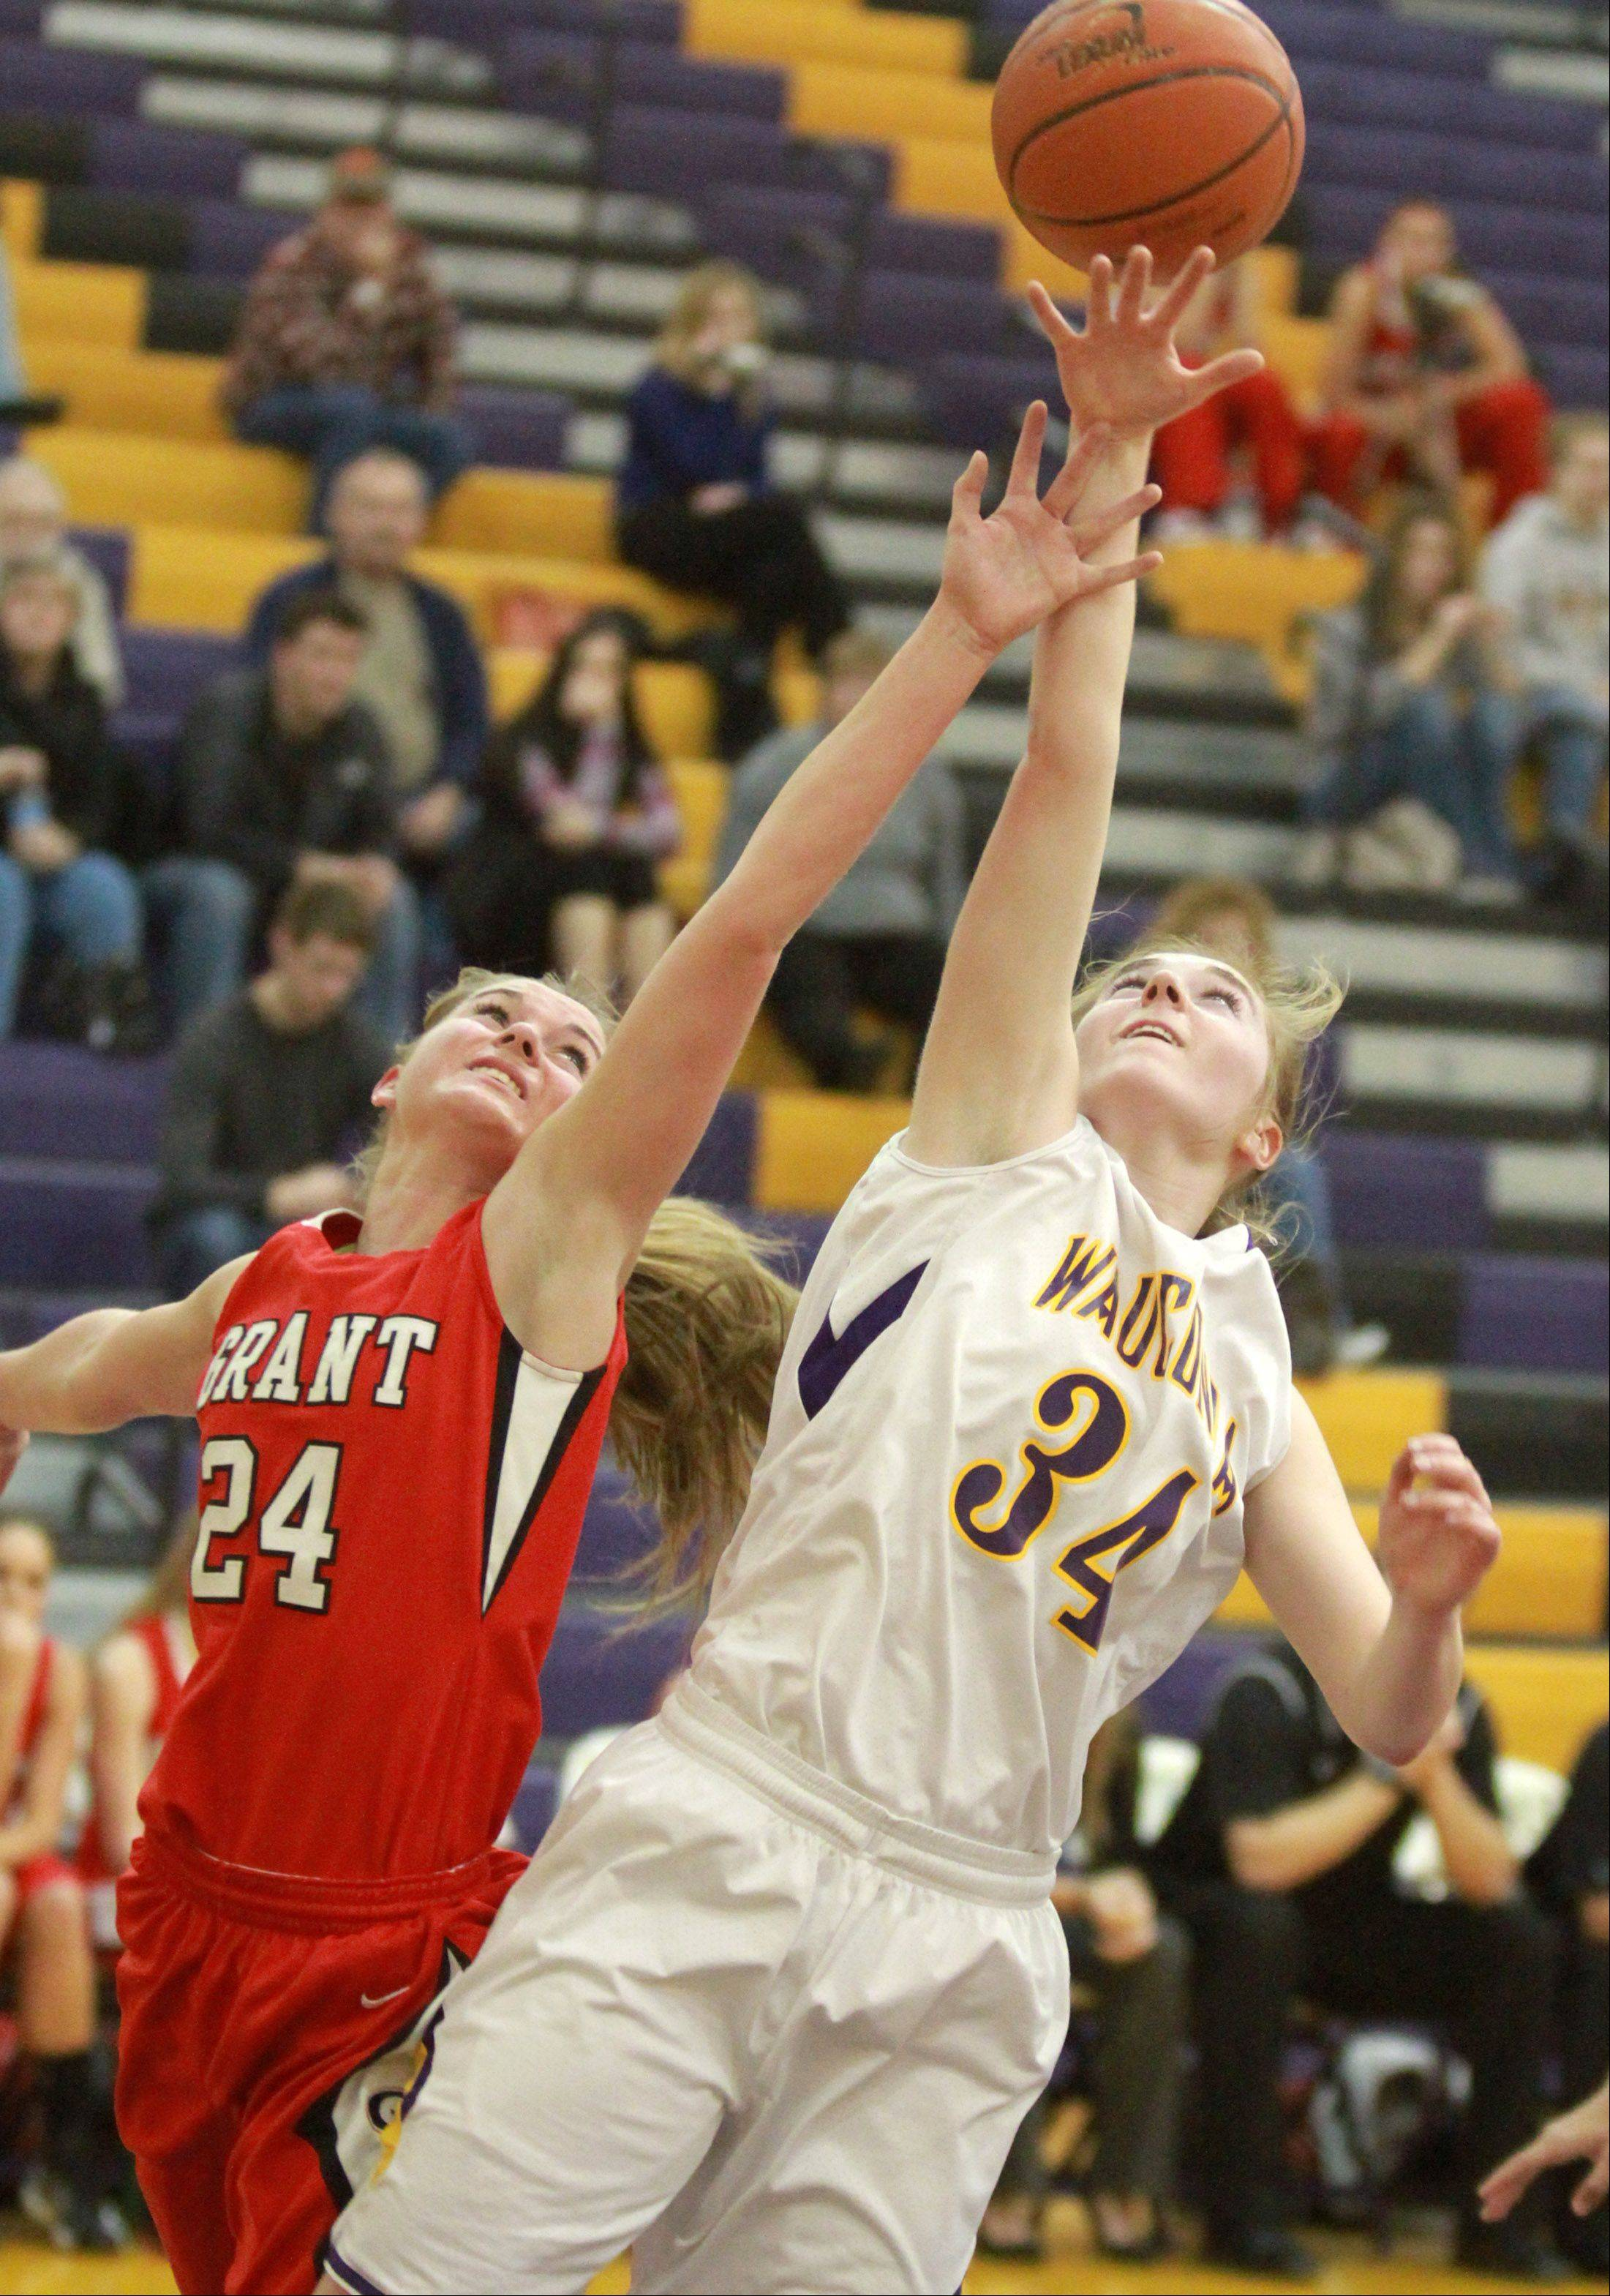 Wauconda's Jessie Wood fights for a rebound against Grant's Kaylie Kanzler last season. Wood, a junior, enters her third season on varsity.